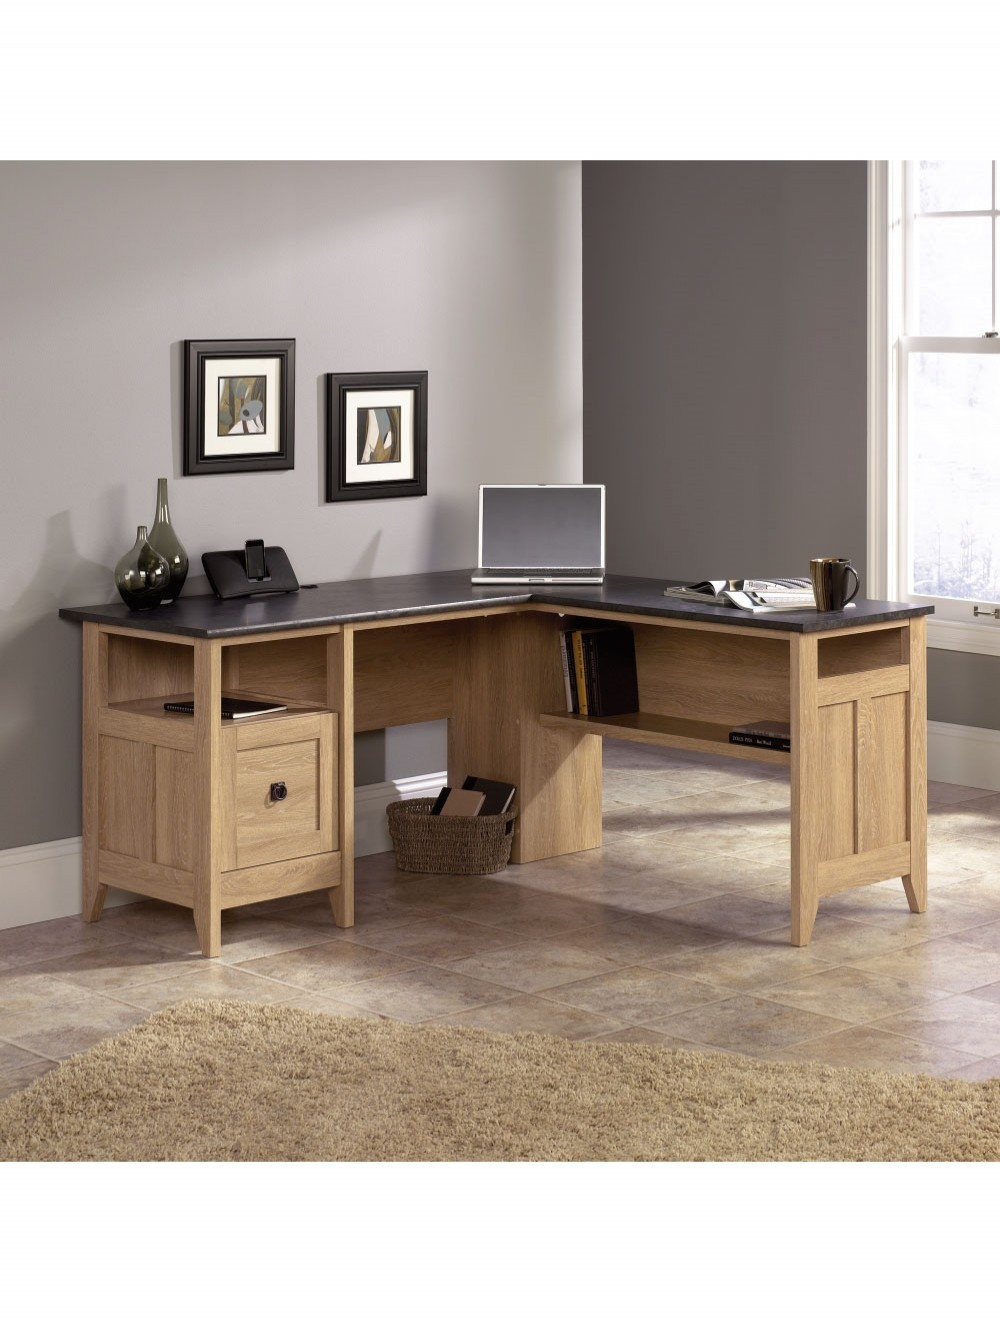 Office study desk Beautiful Office Home Office Desks Teknik Lshaped Study Desk 5412320 Enlarged View 121 Office Furniture Home Office Desks Teknik Lshaped Study Desk 5412320 121 Office